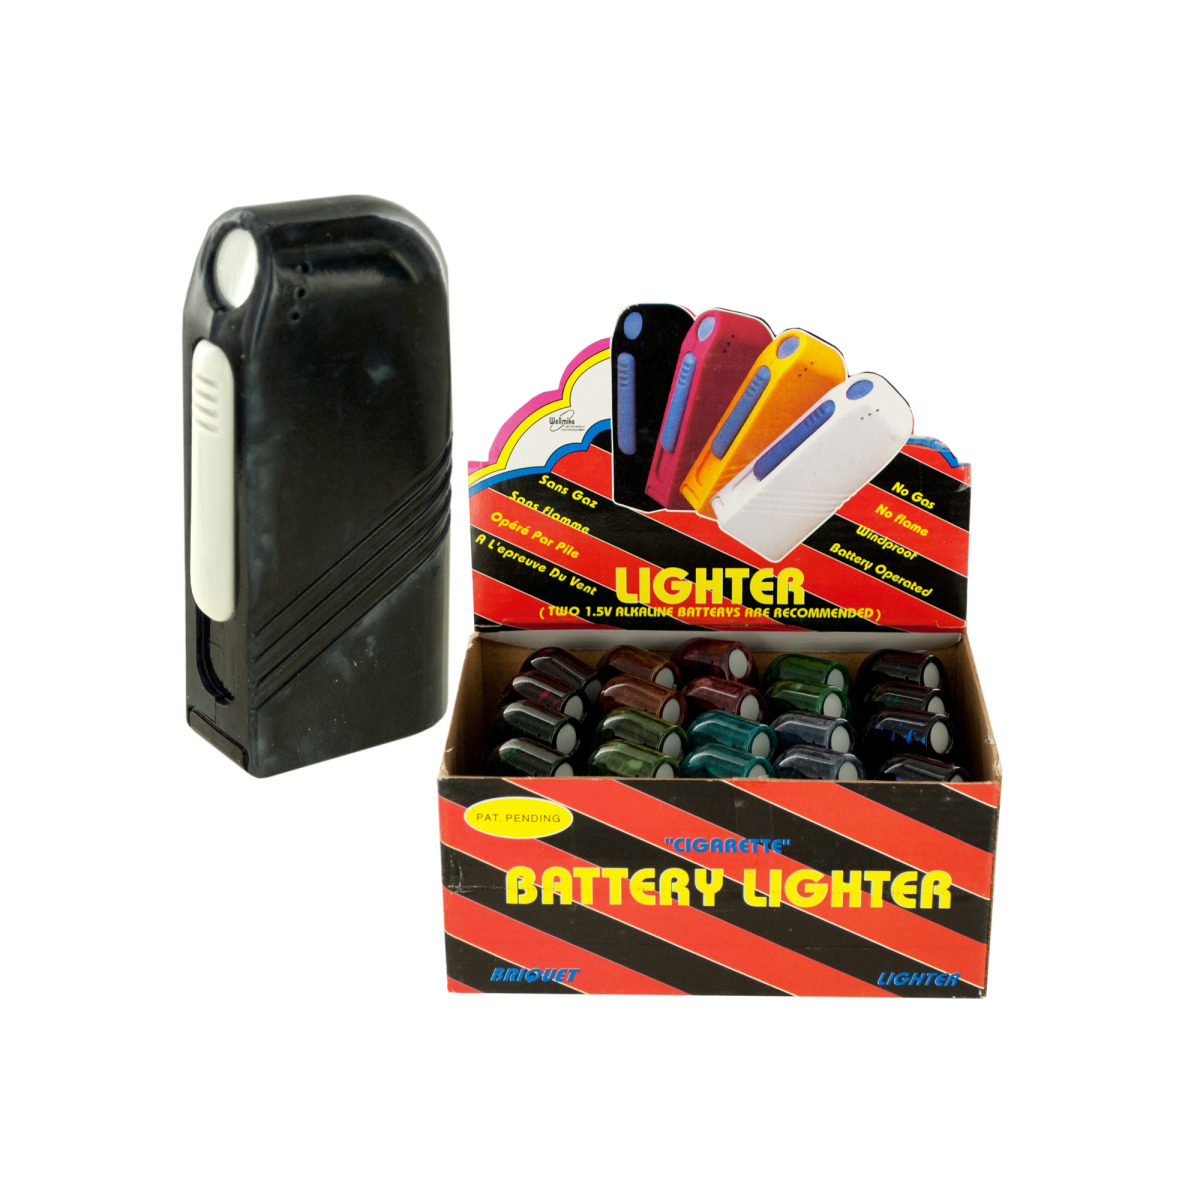 CIGARETTE Battery Lighter Countertop Display [1942289]